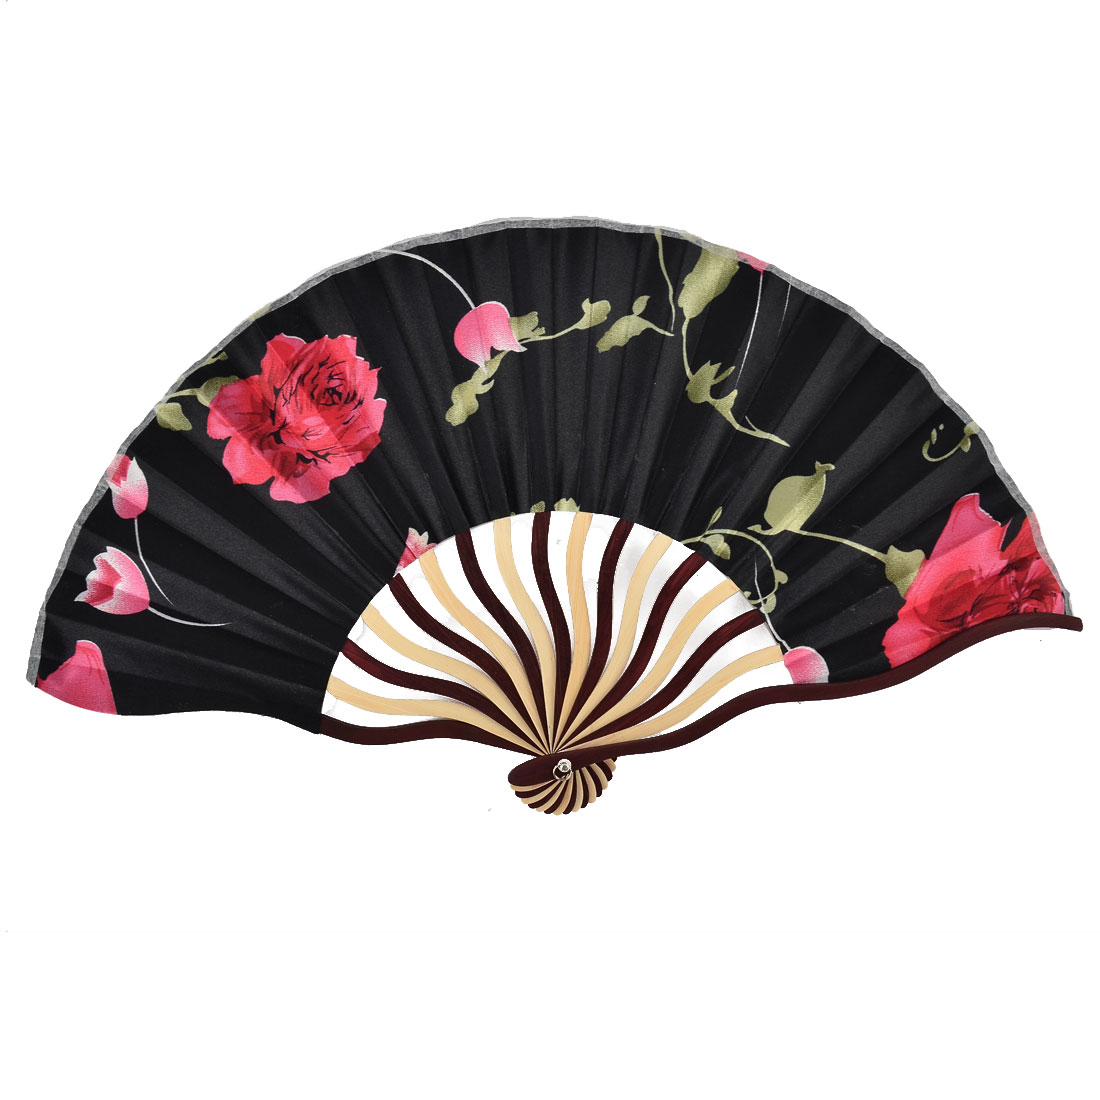 Bamboo Ribs Summer Cool Floral Pattern Portable Foldable Hand Fan Blue w Pouch